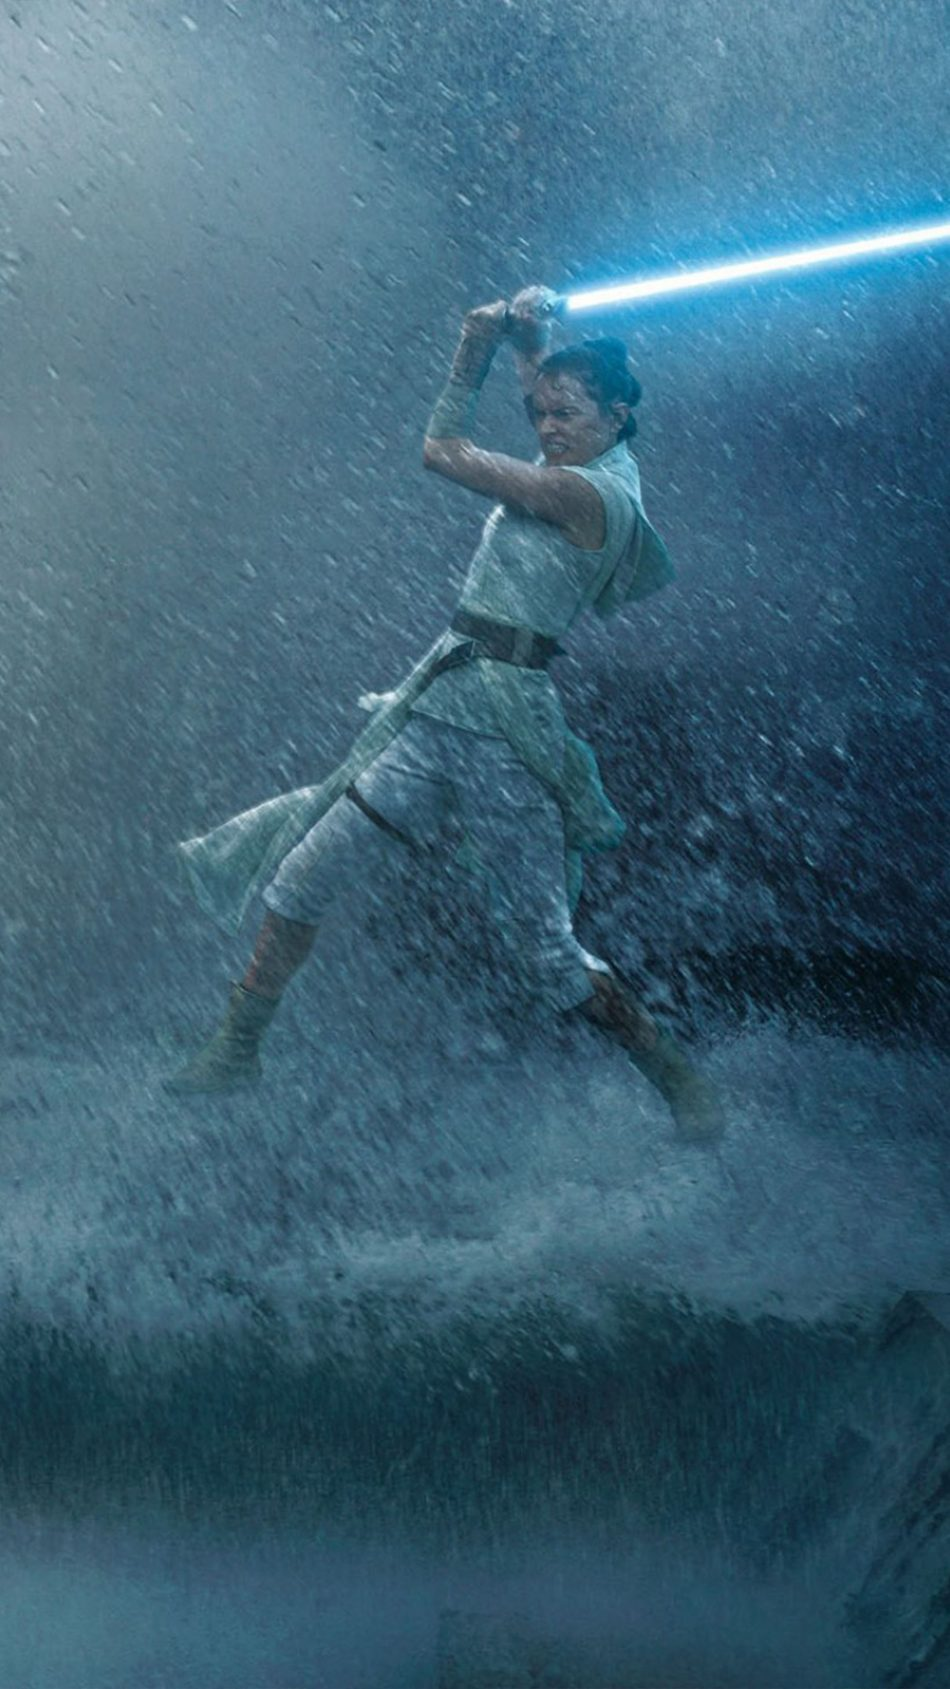 Daisy Ridley Fight In Star Wars The Rise Of Skywalker 4k Ultra Hd Mobile Wallpaper